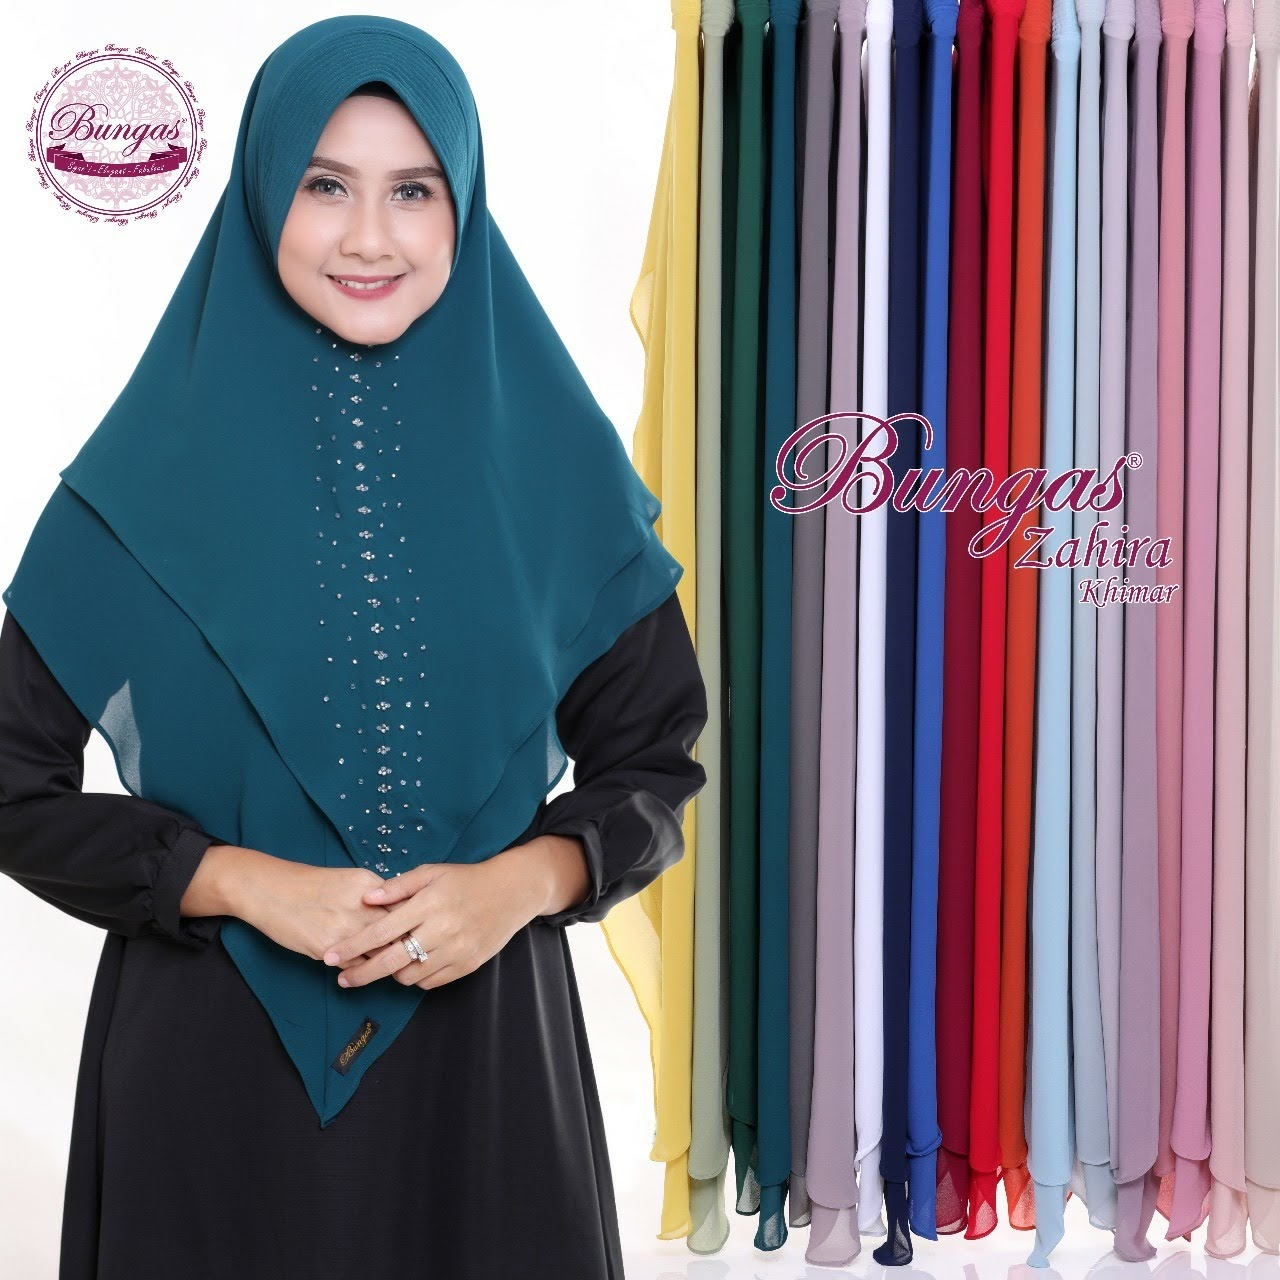 Rumah Gamis Aisha: ZAHIRA KHIMAR BY BUNGAS on textile collections, antique collections, painting collections, jewelry design collections, fashion fashion, fashion culture, fashion cards, machine embroidery design collections, fashion designer office, fashion luggage, fashion jewellery, fashion invitations, fashion clothing, fashion software, lauren conrad collections, fashion brooches, interior design collections, fashion necklaces, fashion bracelets,